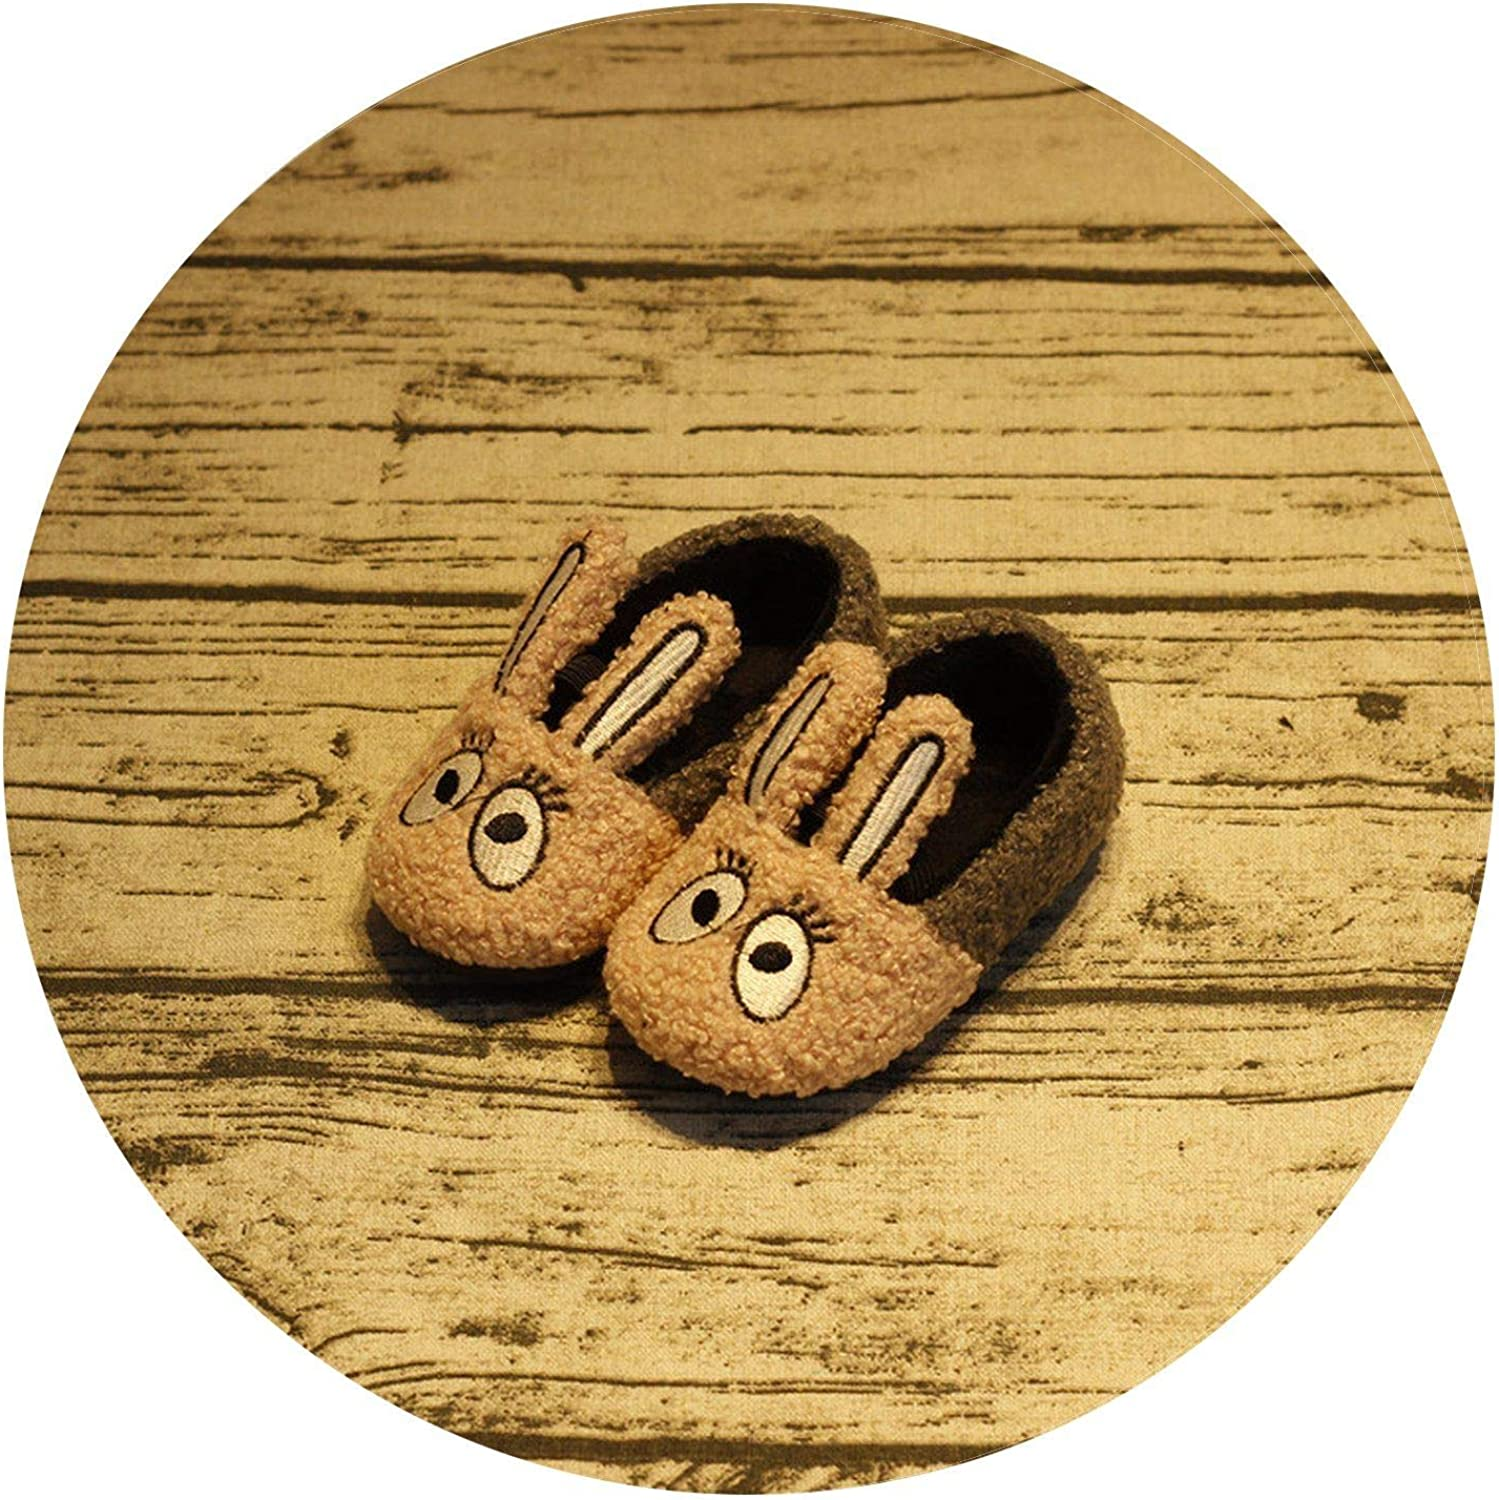 Summer-lavender Kids Winter Warm Cotton Slippers Rabbit Ears Cutess Home Anti-Skid shoes